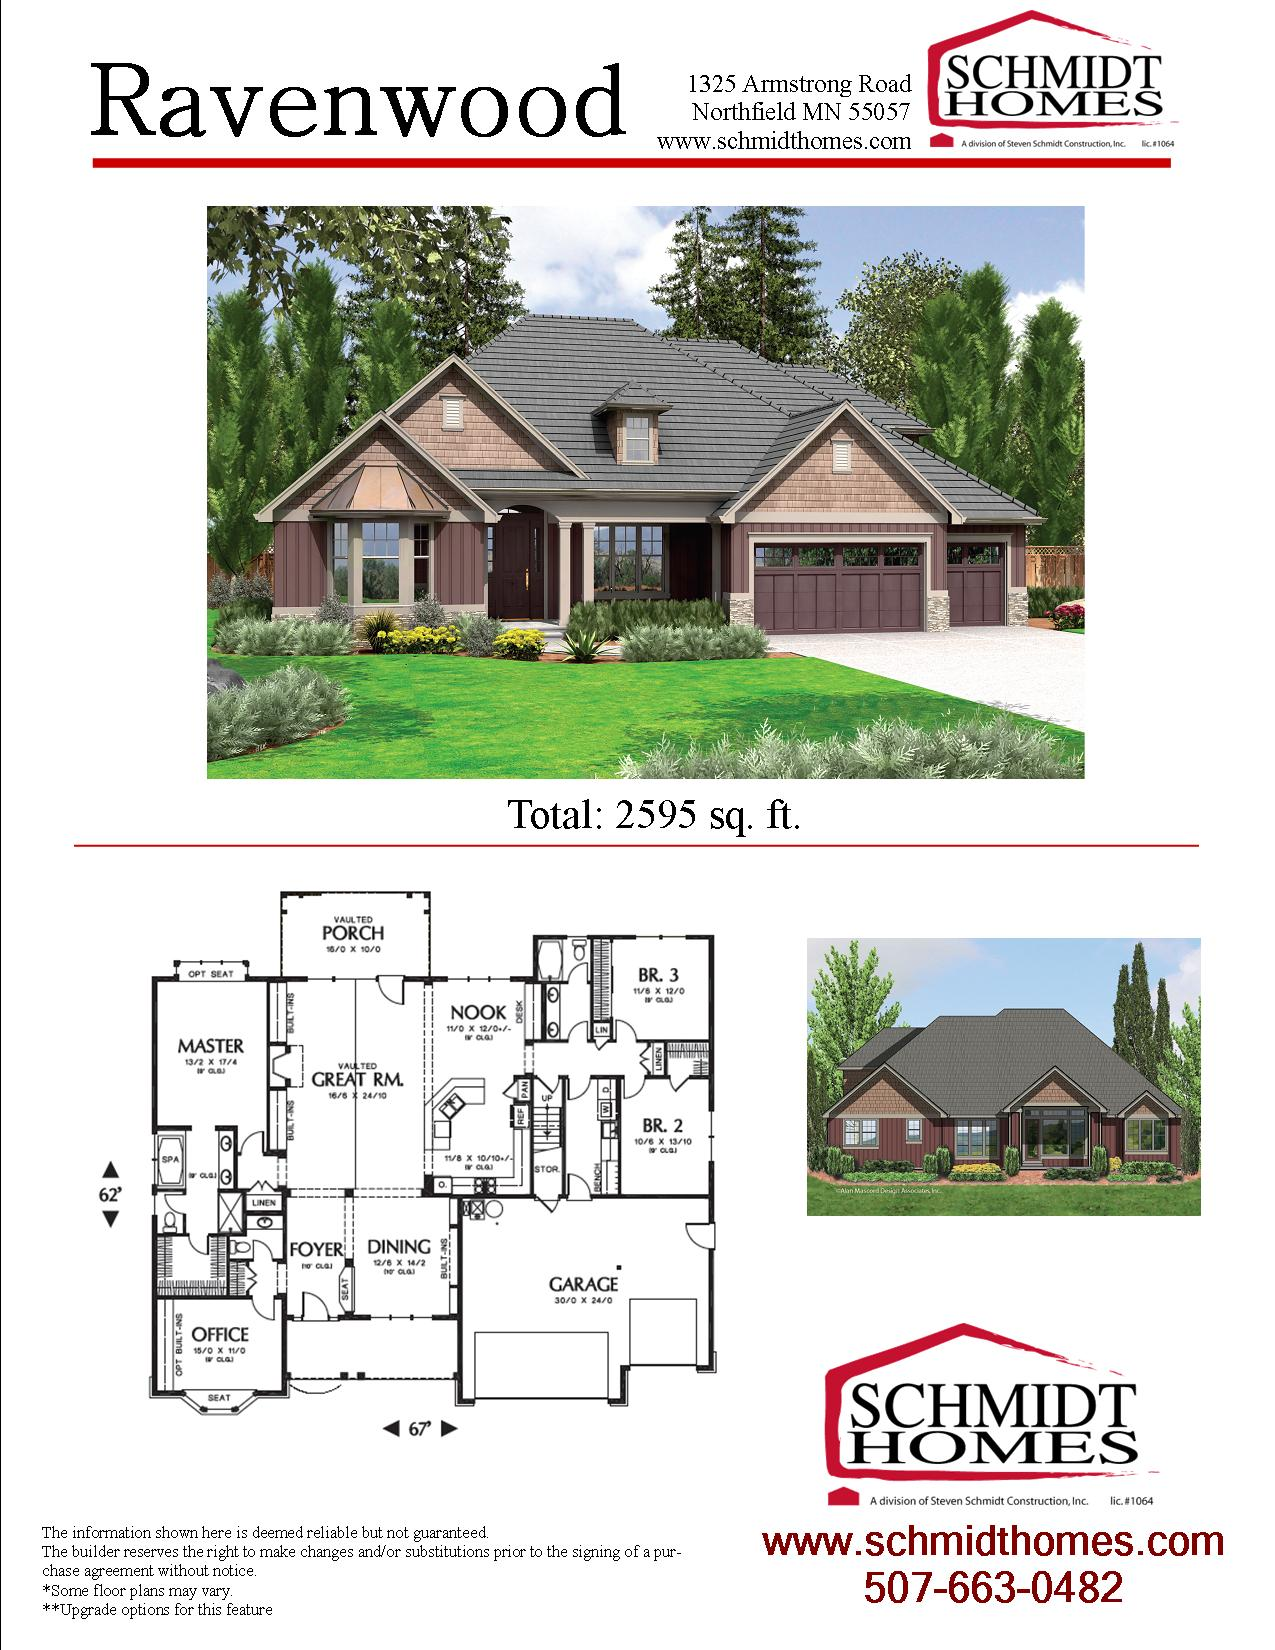 Ravenwood schmidt homes for Ravenwood homes